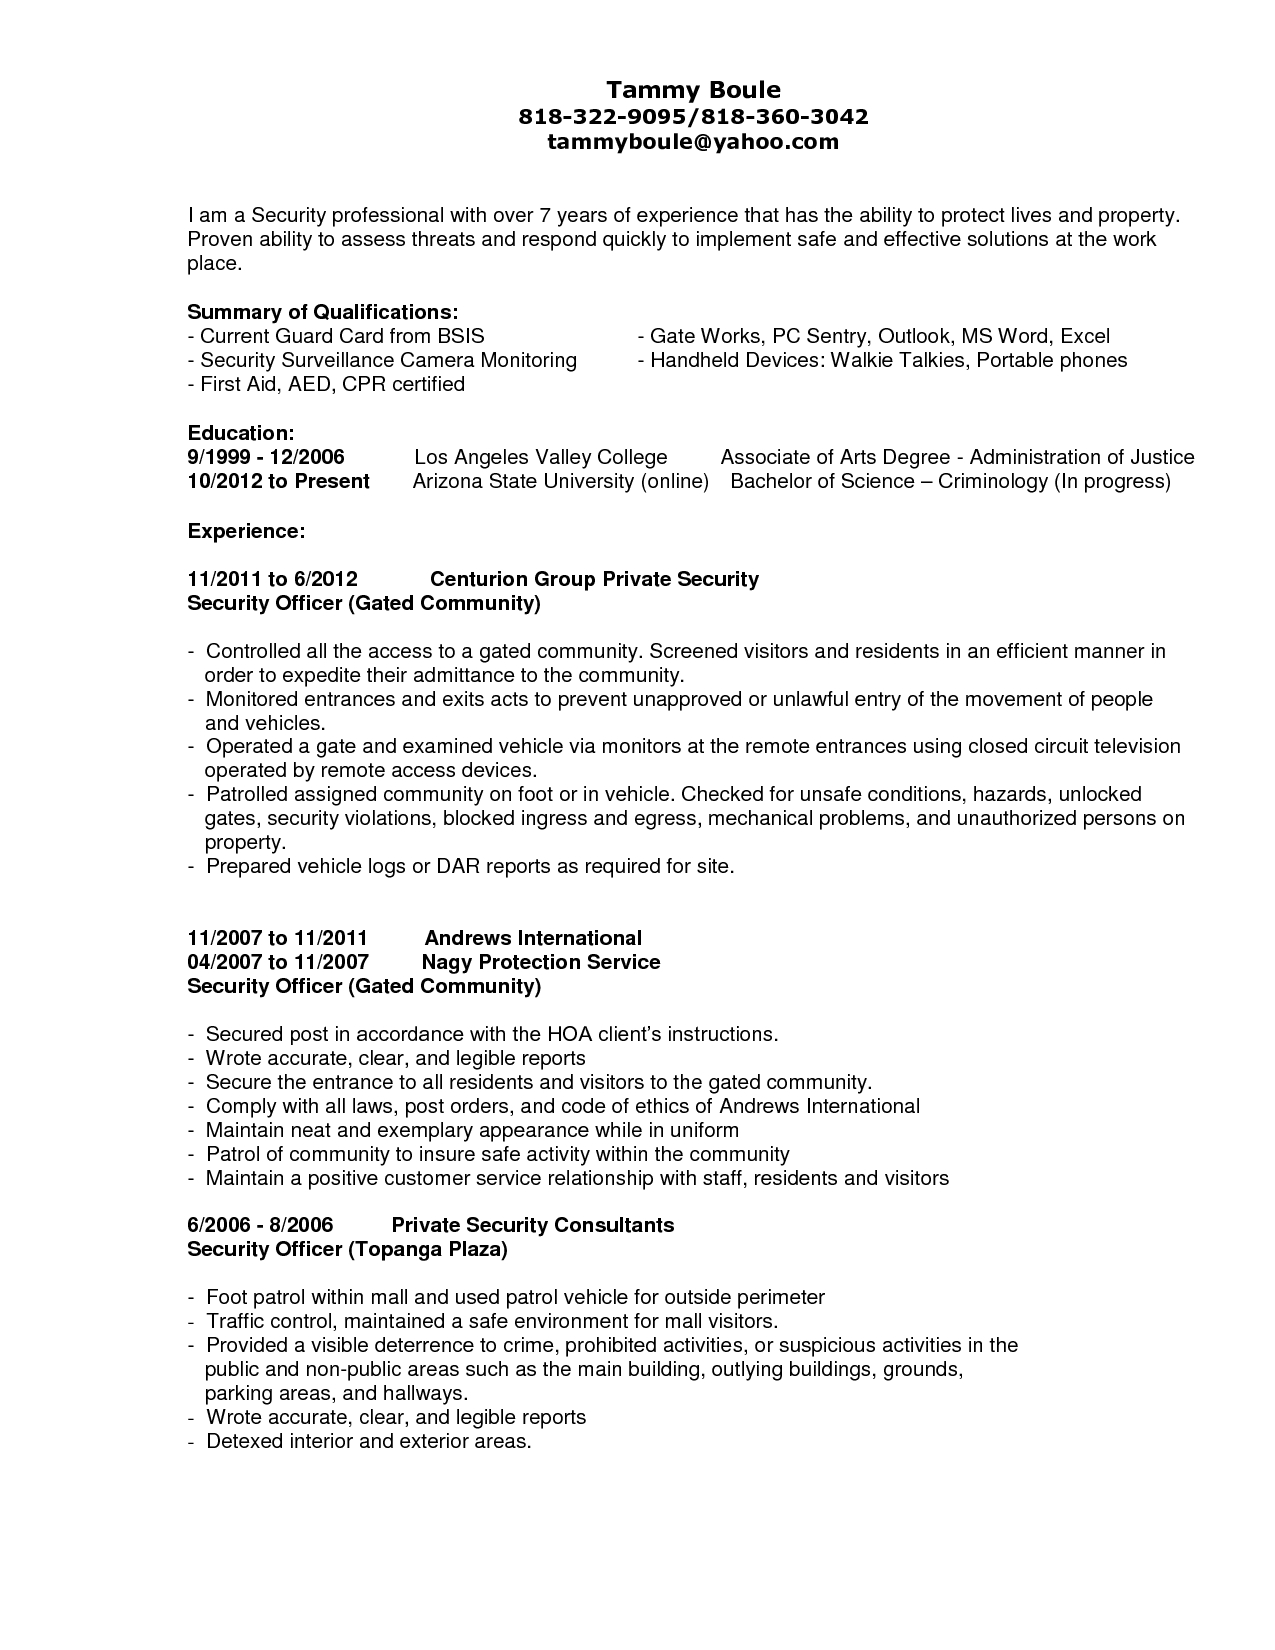 Post Resume Online - Pin by Latestresume On Latest Resume Pinterest